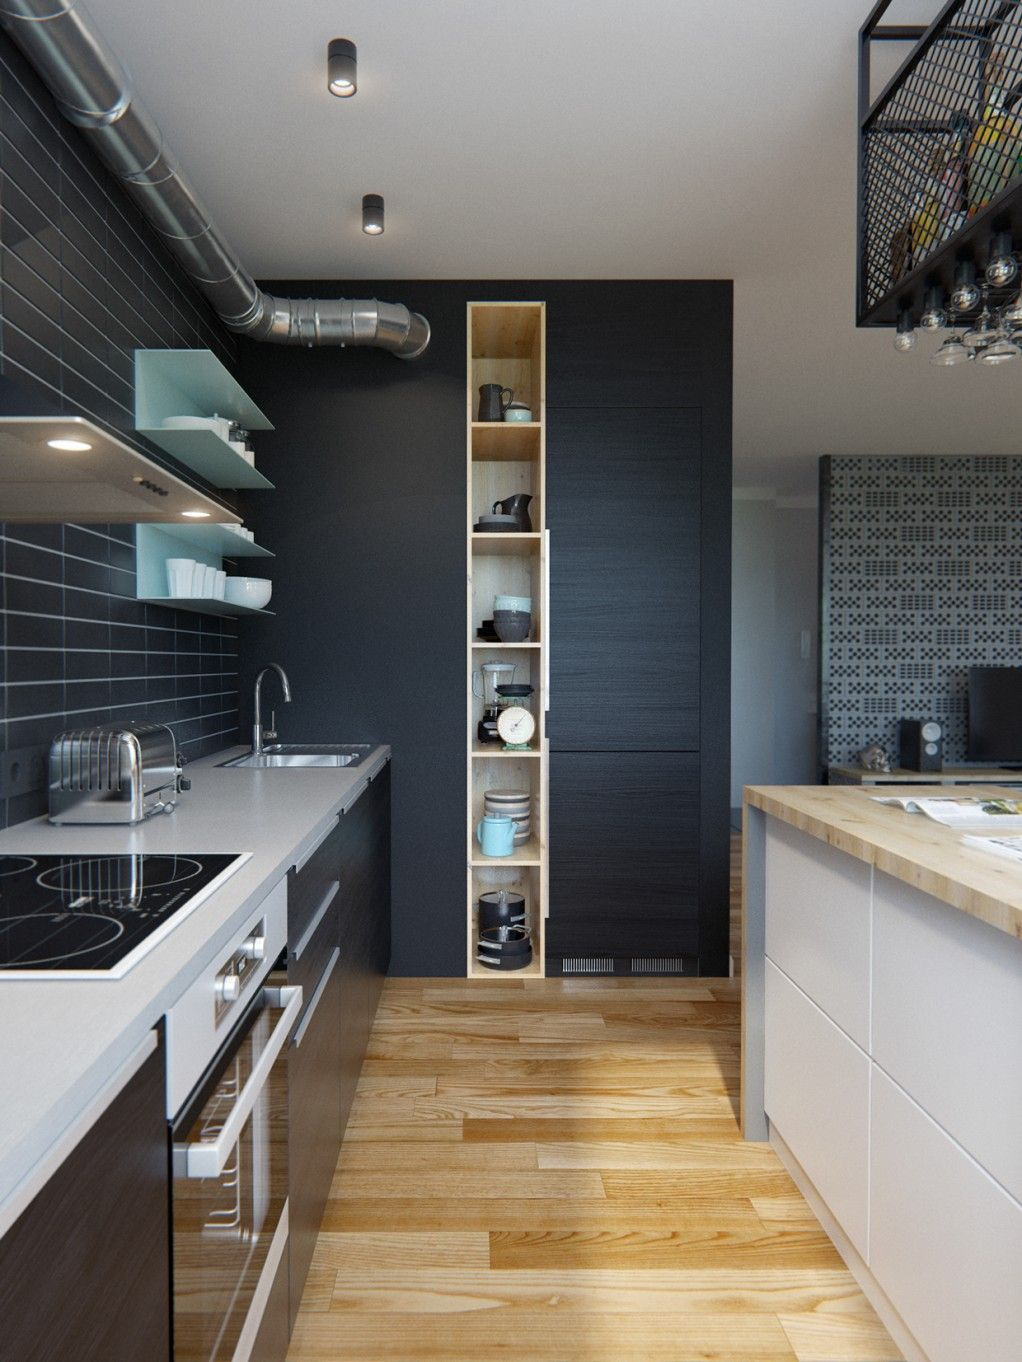 Six Common Kitchen Design Mistakes and How